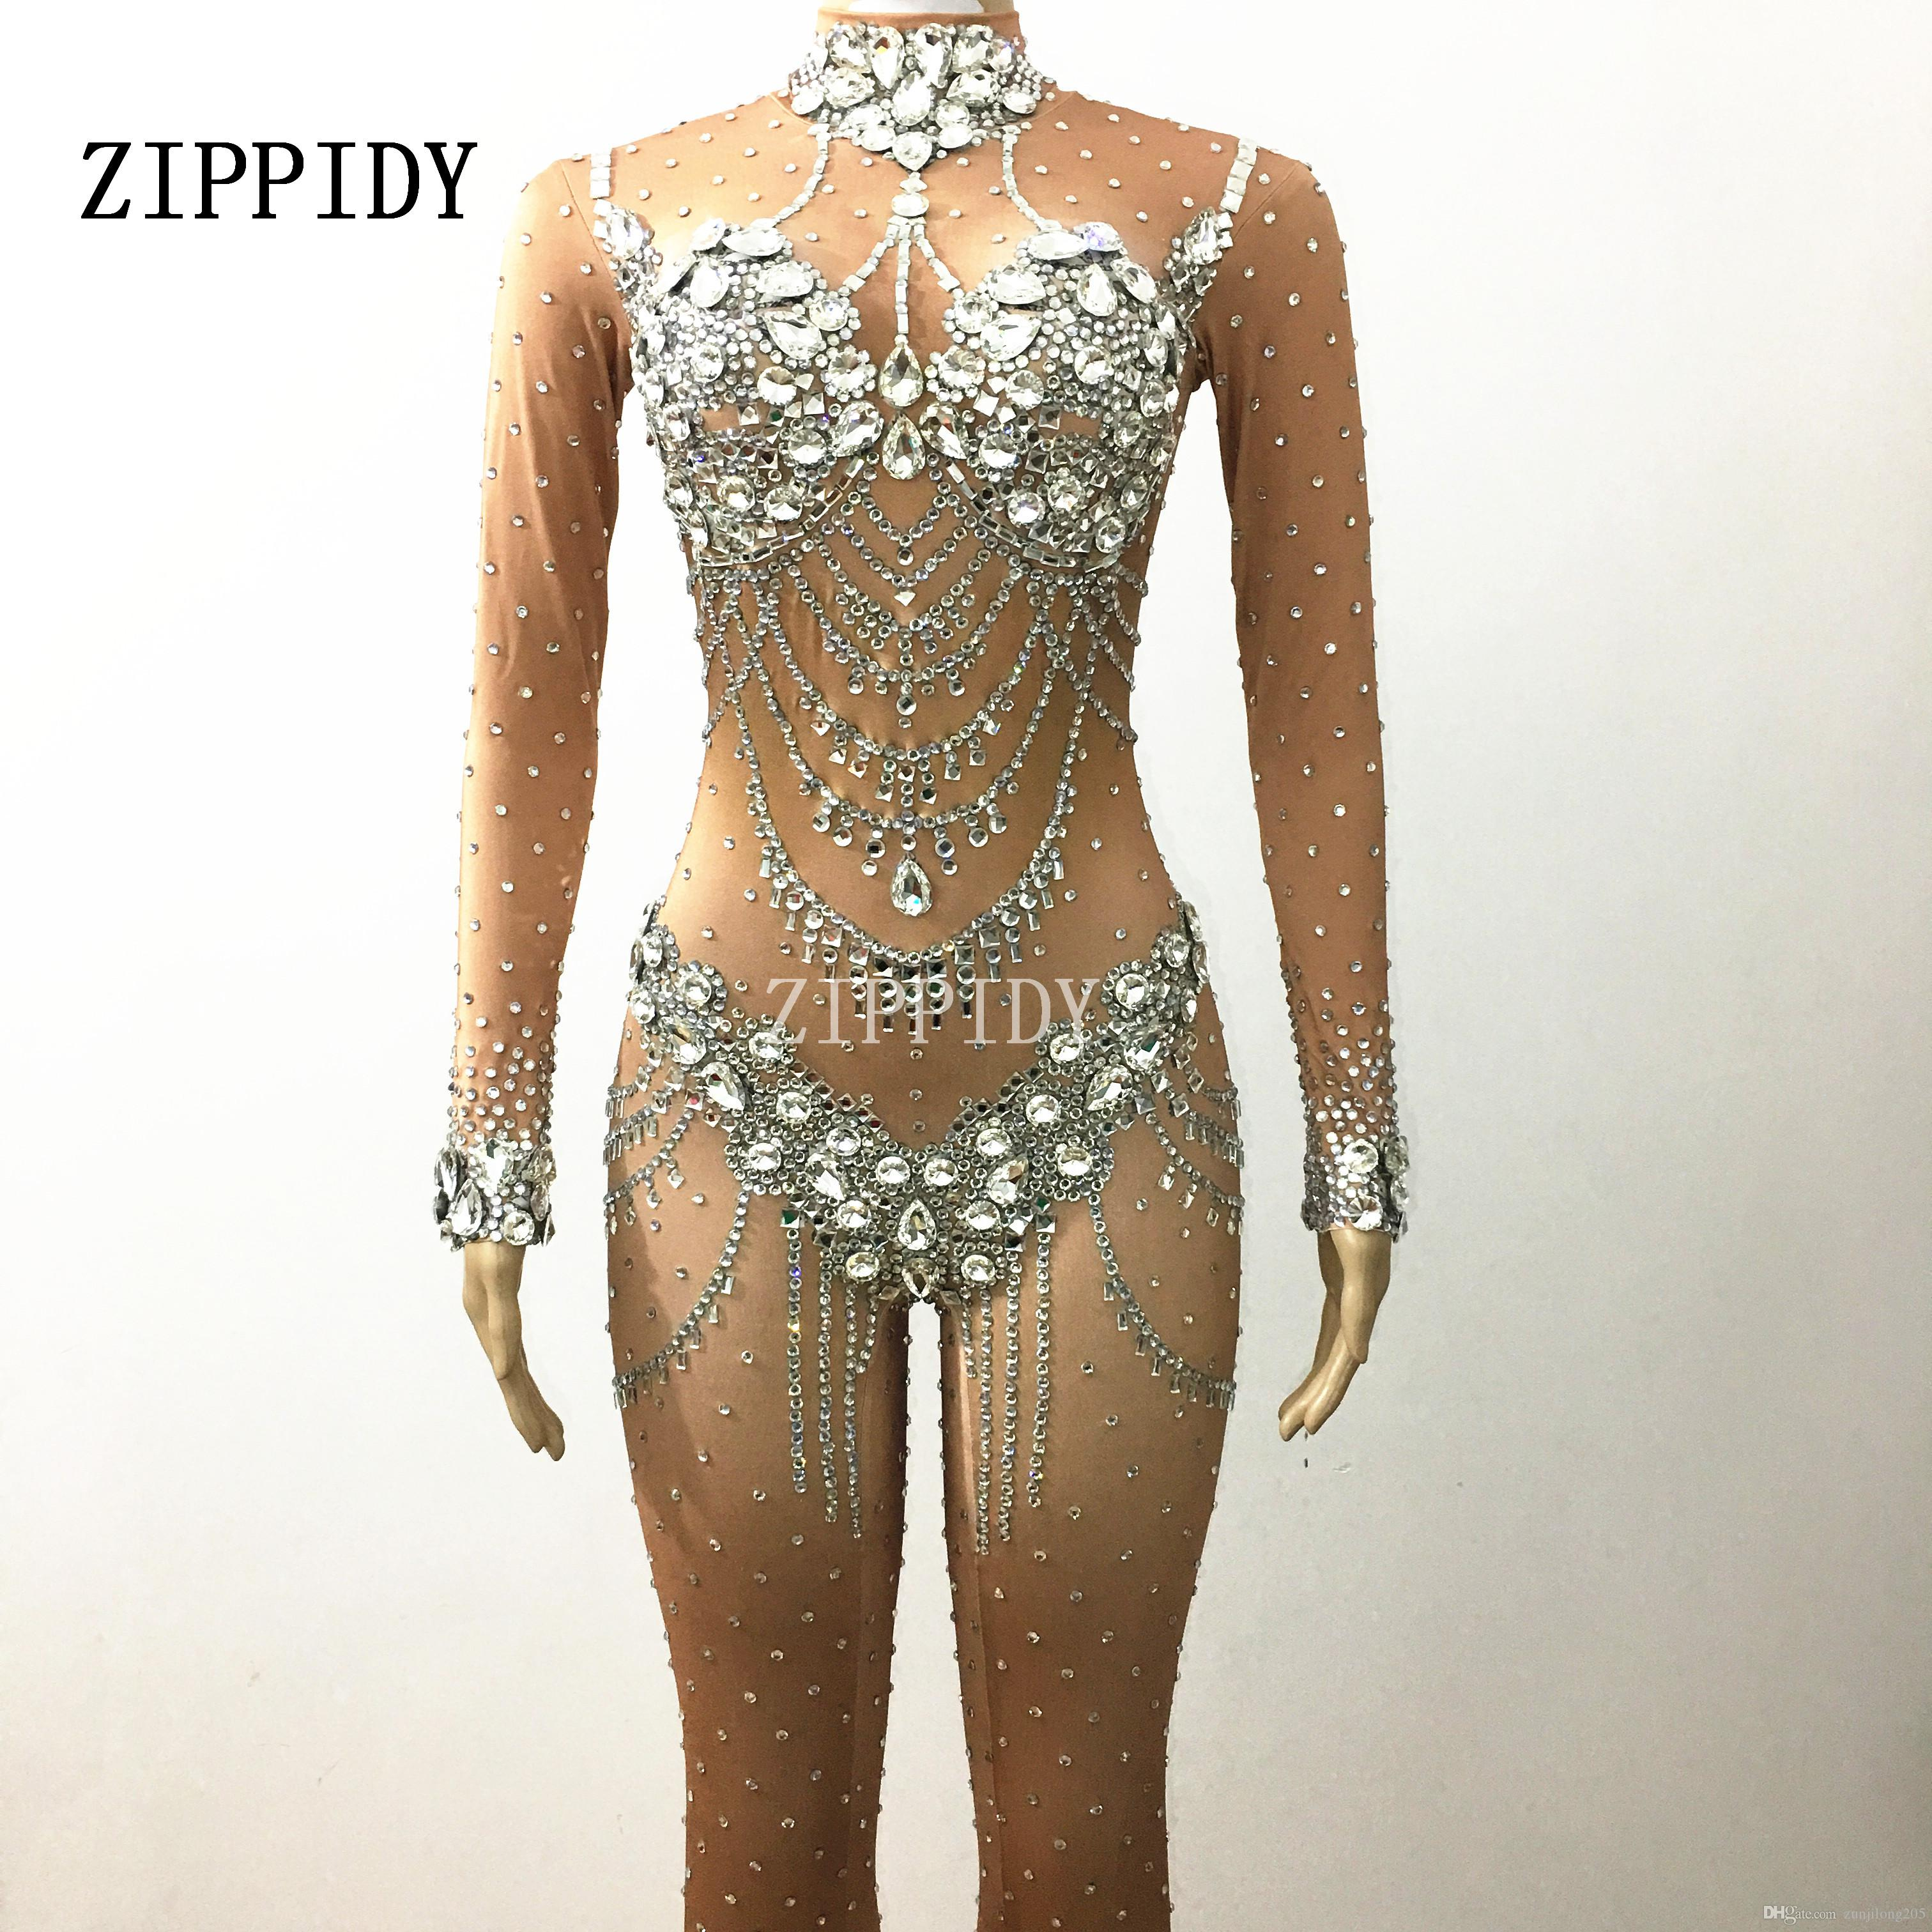 f4081a858f1b 2019 Sparkly Crystals Nude Jumpsuit Stretch Stones Outfit Celebrate Bright  Rhinestones Bodysuit Costume Female Singer Birthday Dress From  Zunjilong205, ...